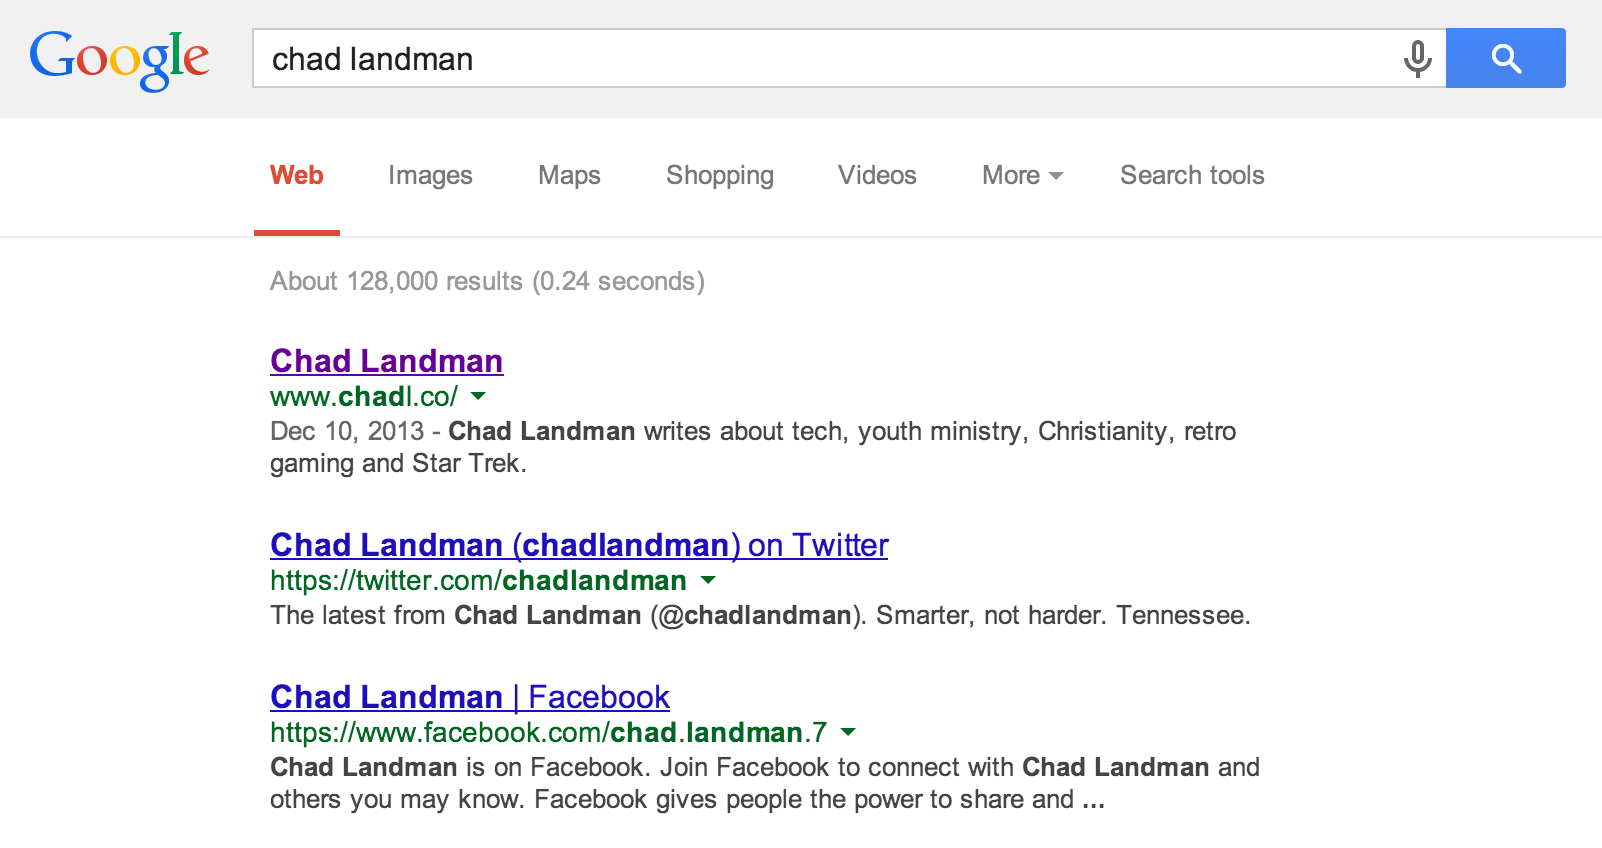 How my site appears in Google search rankings after having my domain for just over a year.